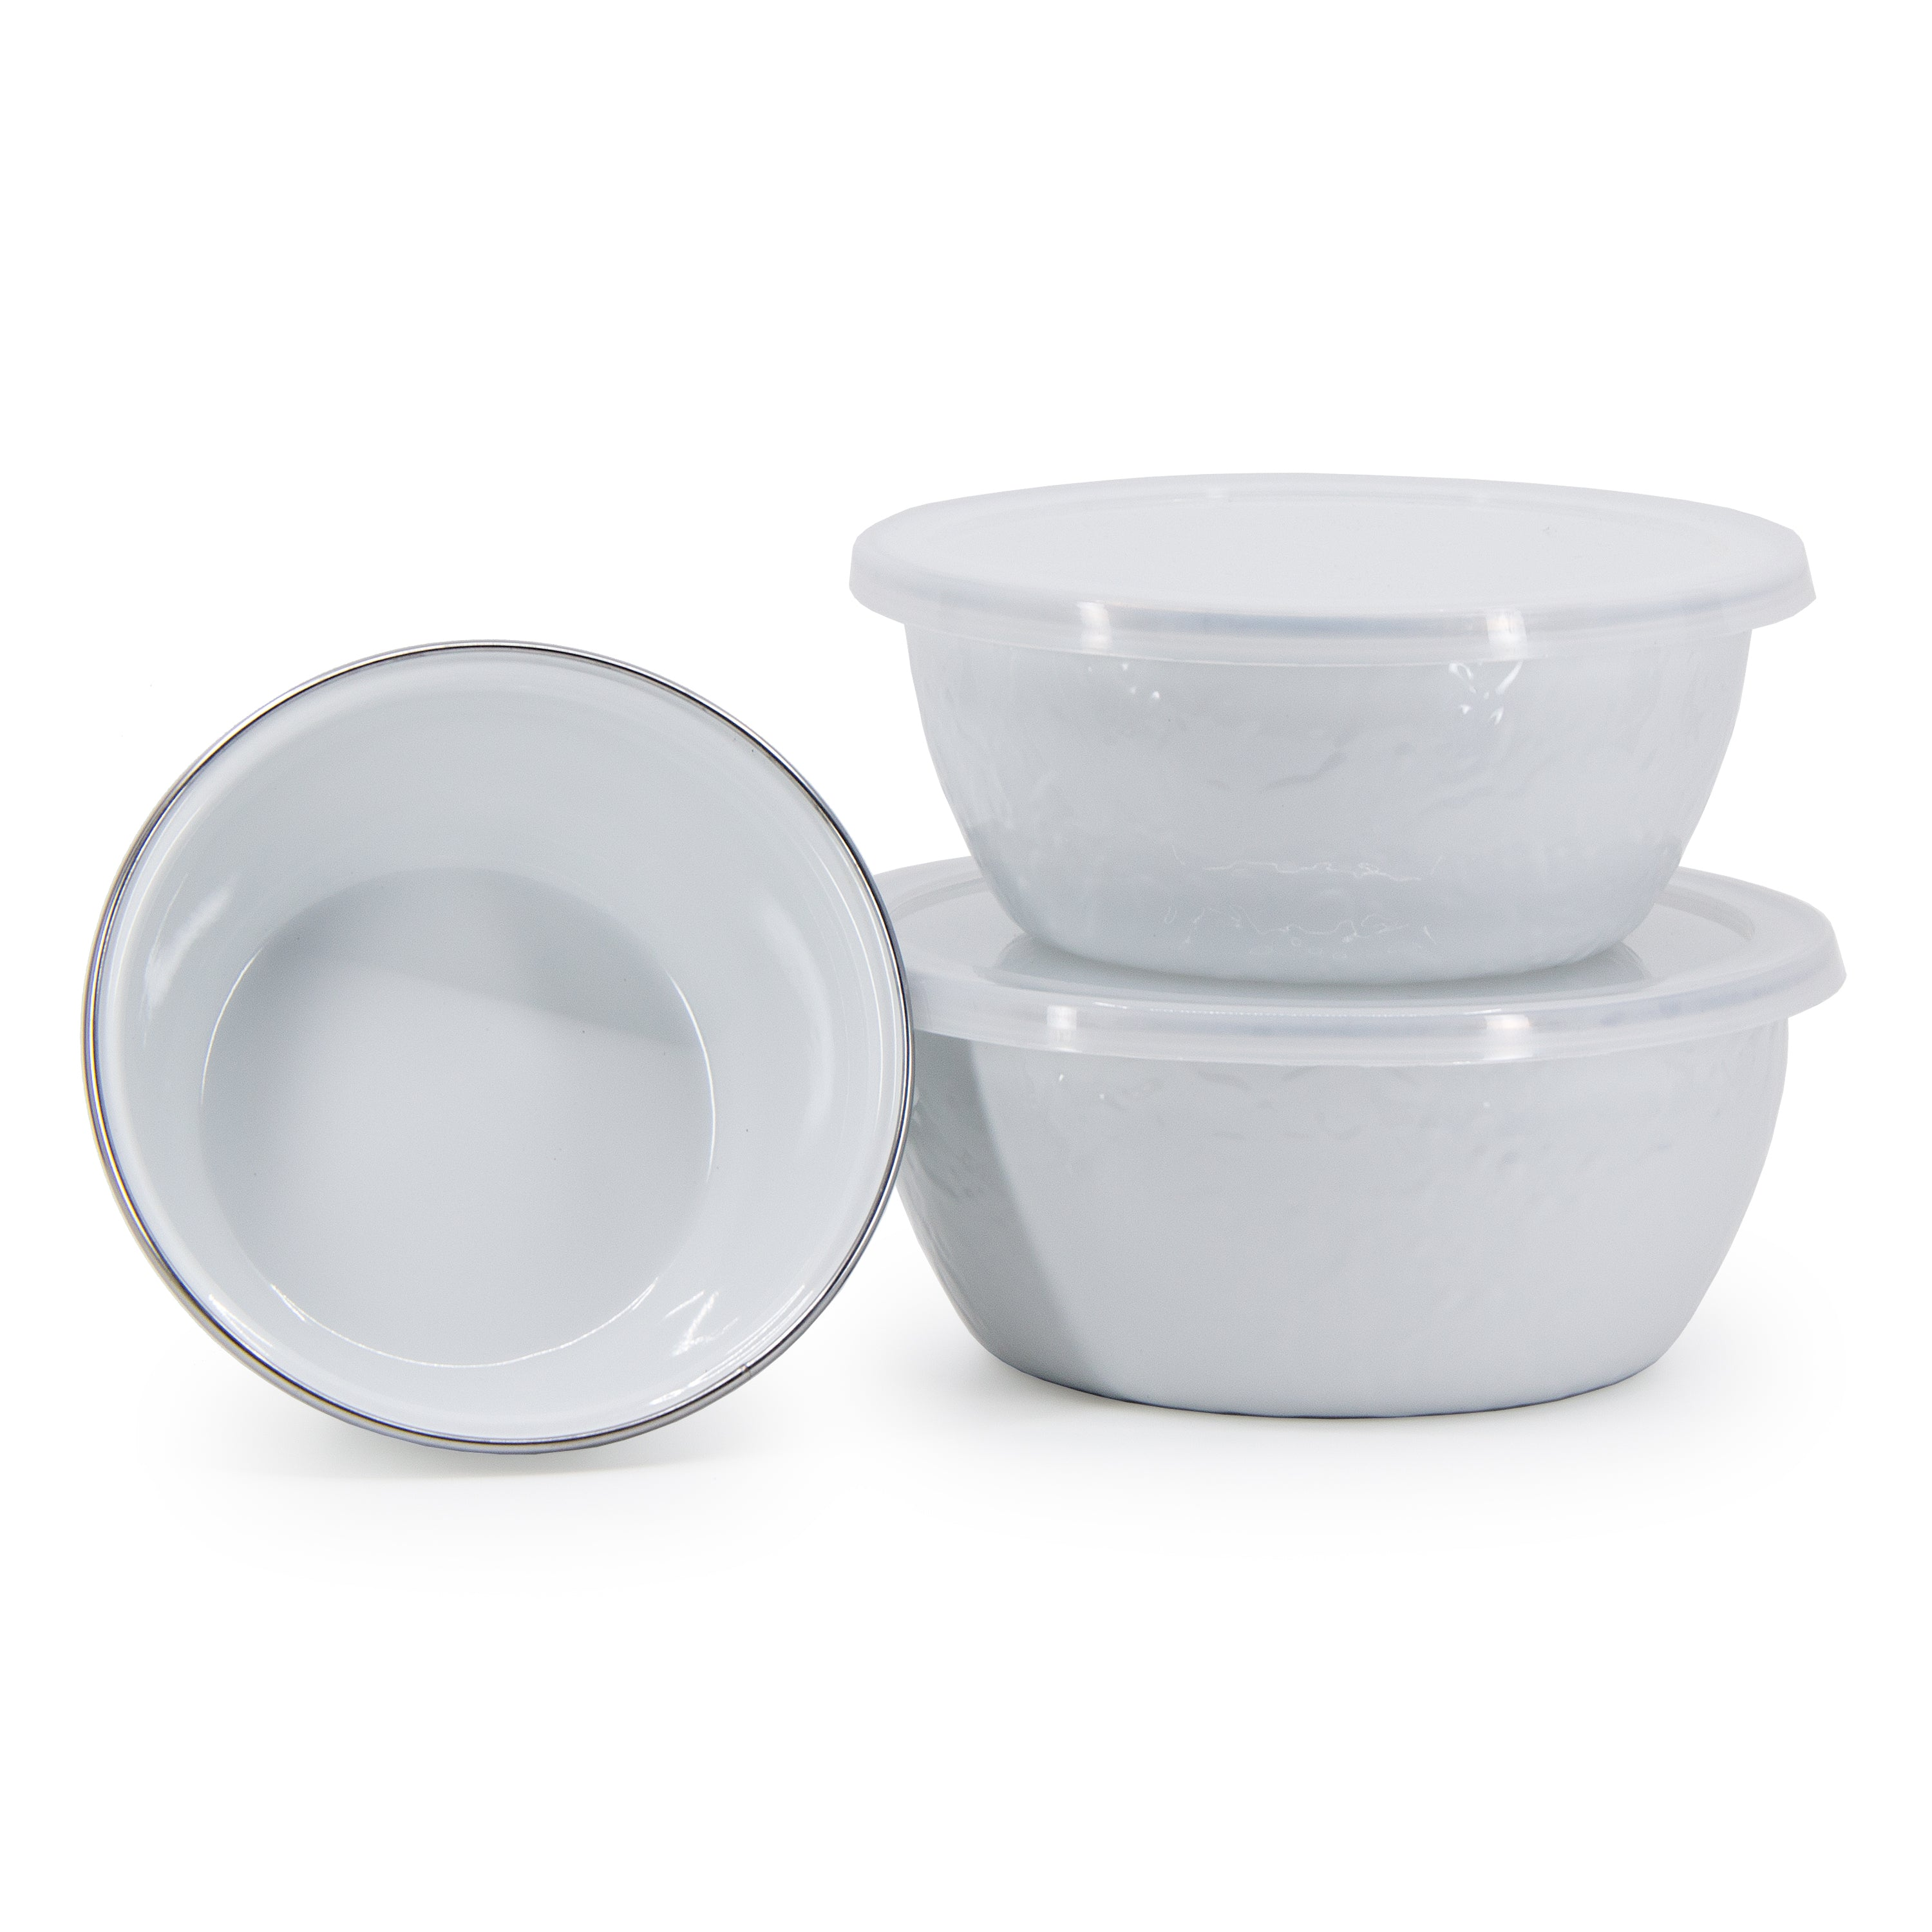 WW30 - Solid White Nesting Bowls Image 1